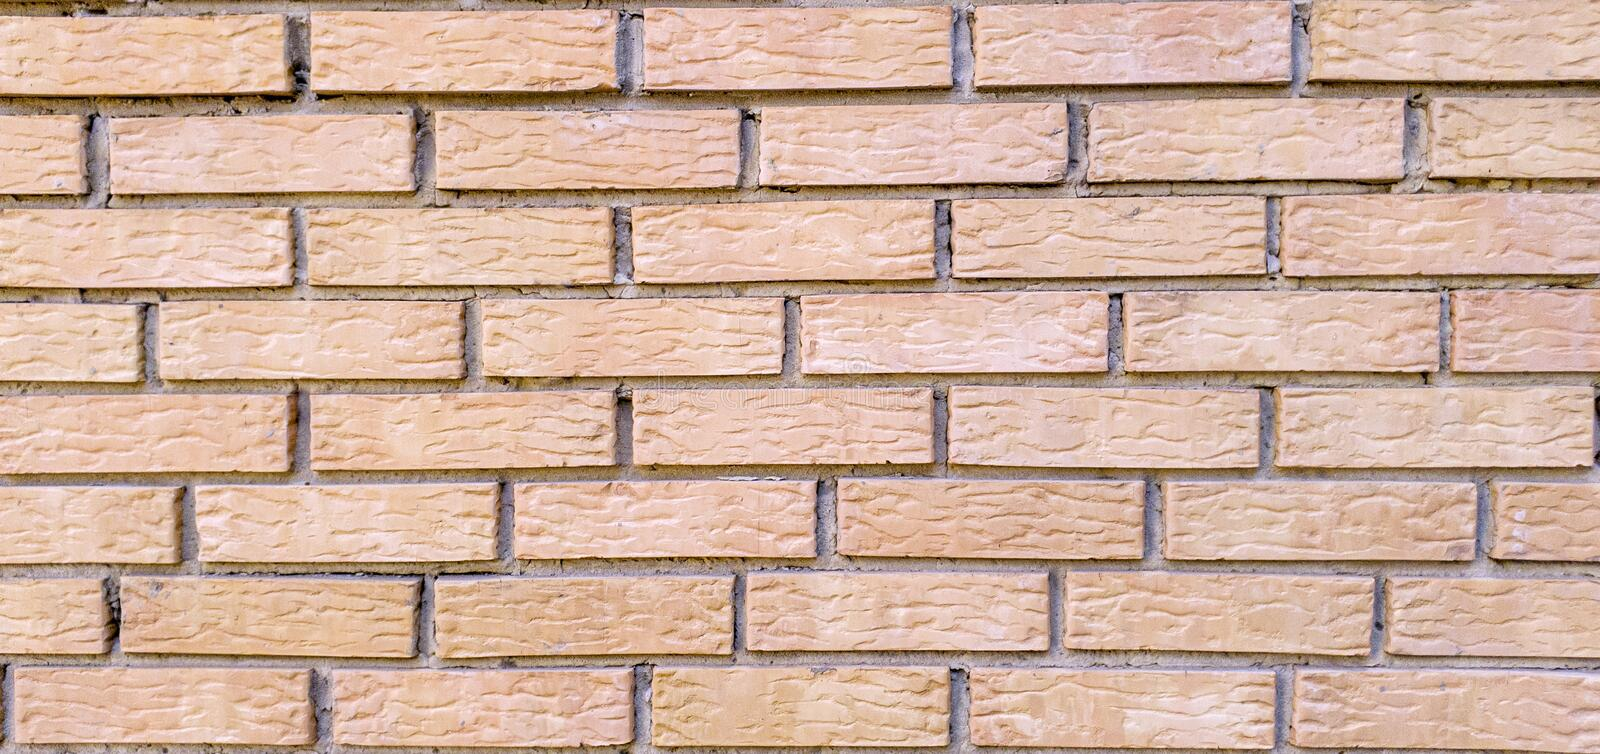 Background of pink bricks for decoration of advertising banners and other design purposes.  stock image